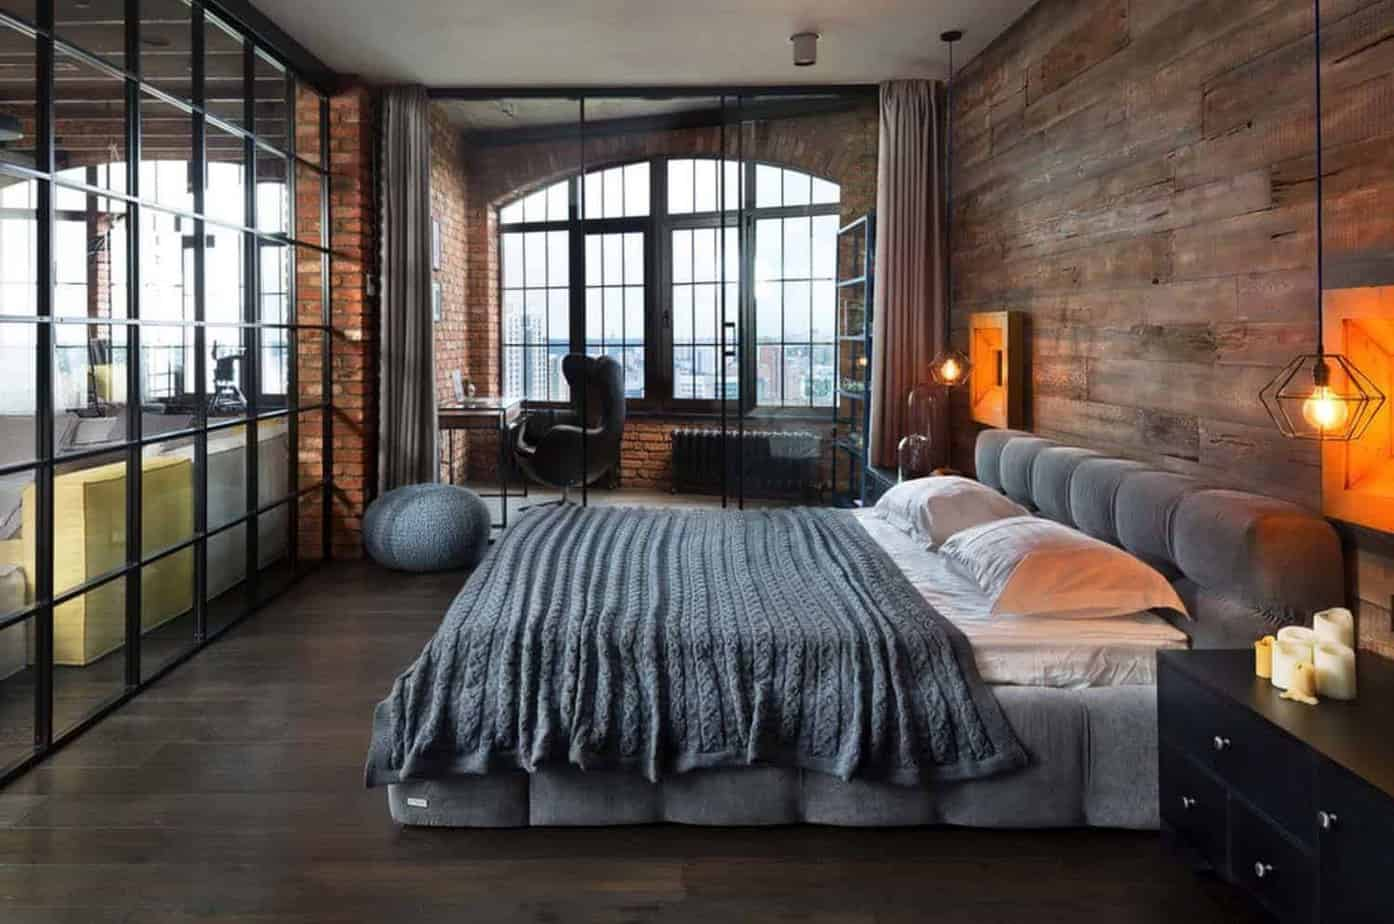 bedroom design ideas 2021 modern rustic industrial style interior